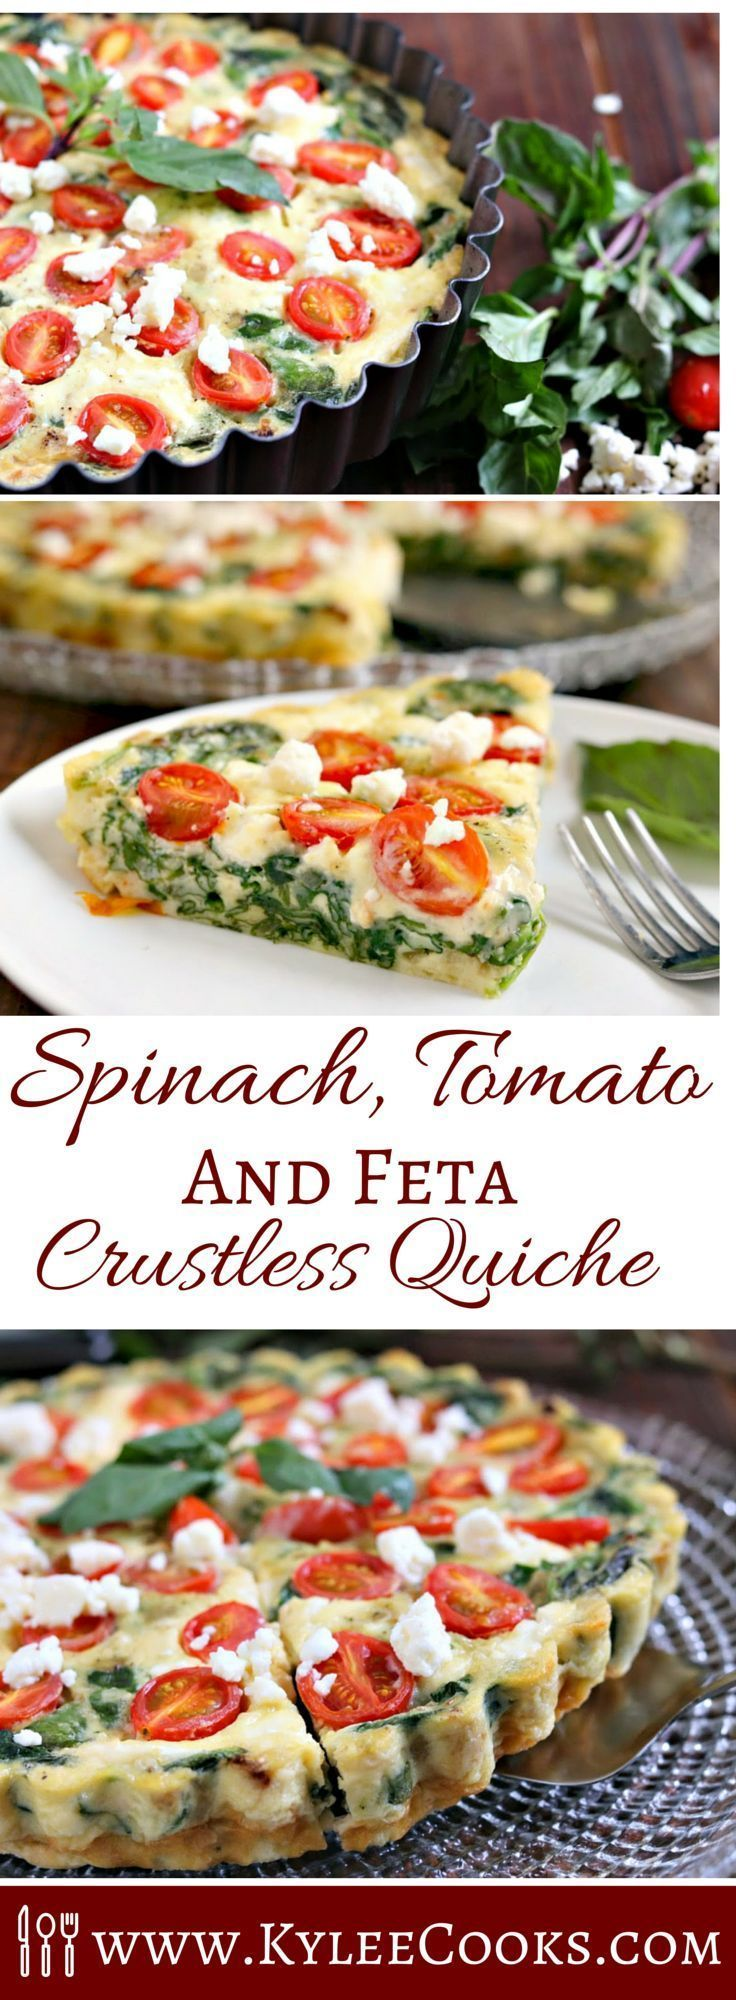 #ad #samsclubmag Superfood spinach is the star of the show in this healthy crustless quiche with tomatoes, onions and feta. Delicious warm, room temp, or chilled - this is a versatile and nutritious dish! @SamsClub